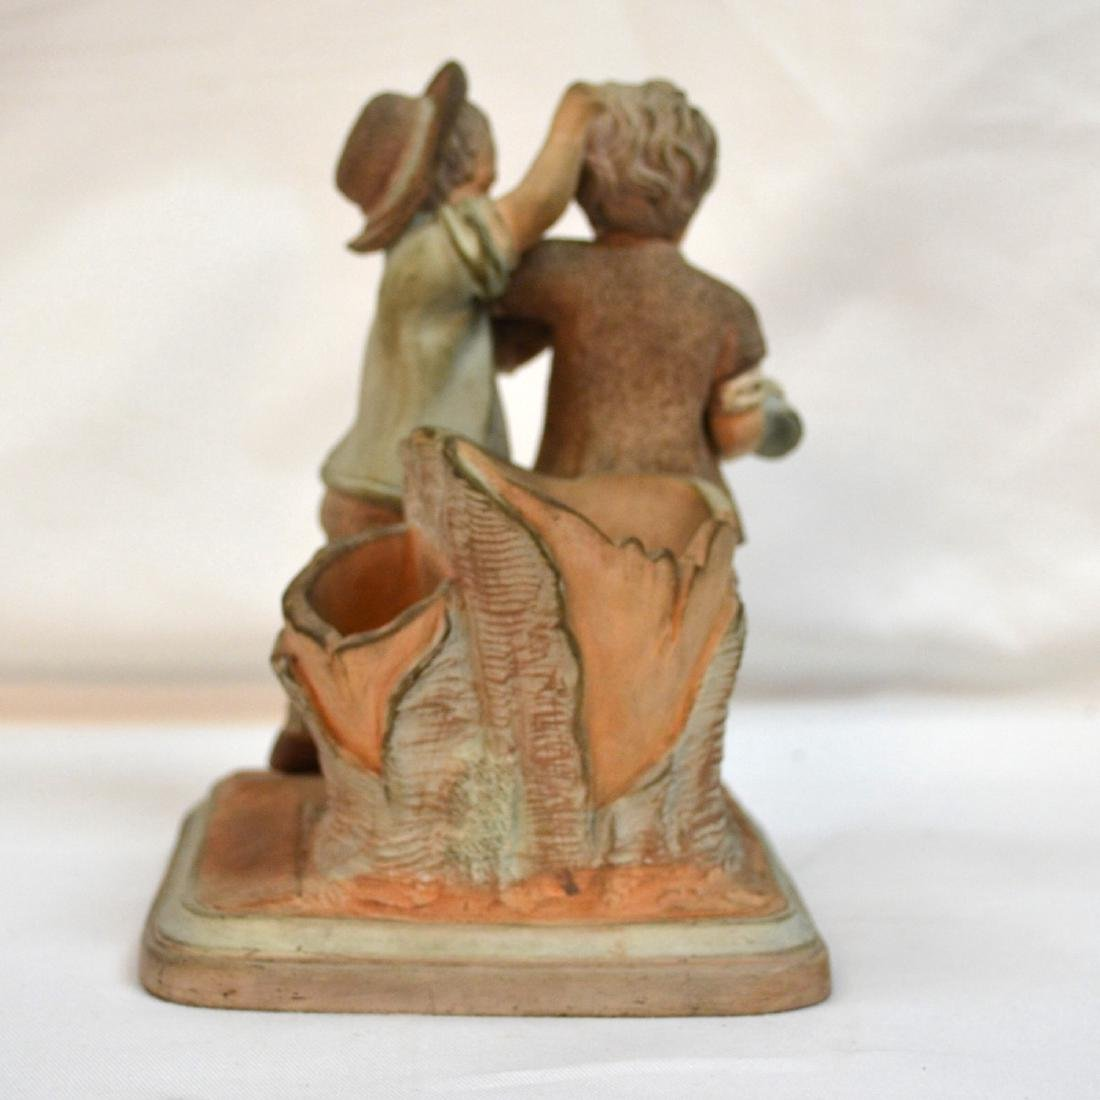 19thc English Terracotta Smoking Stand Two Boys w - 3